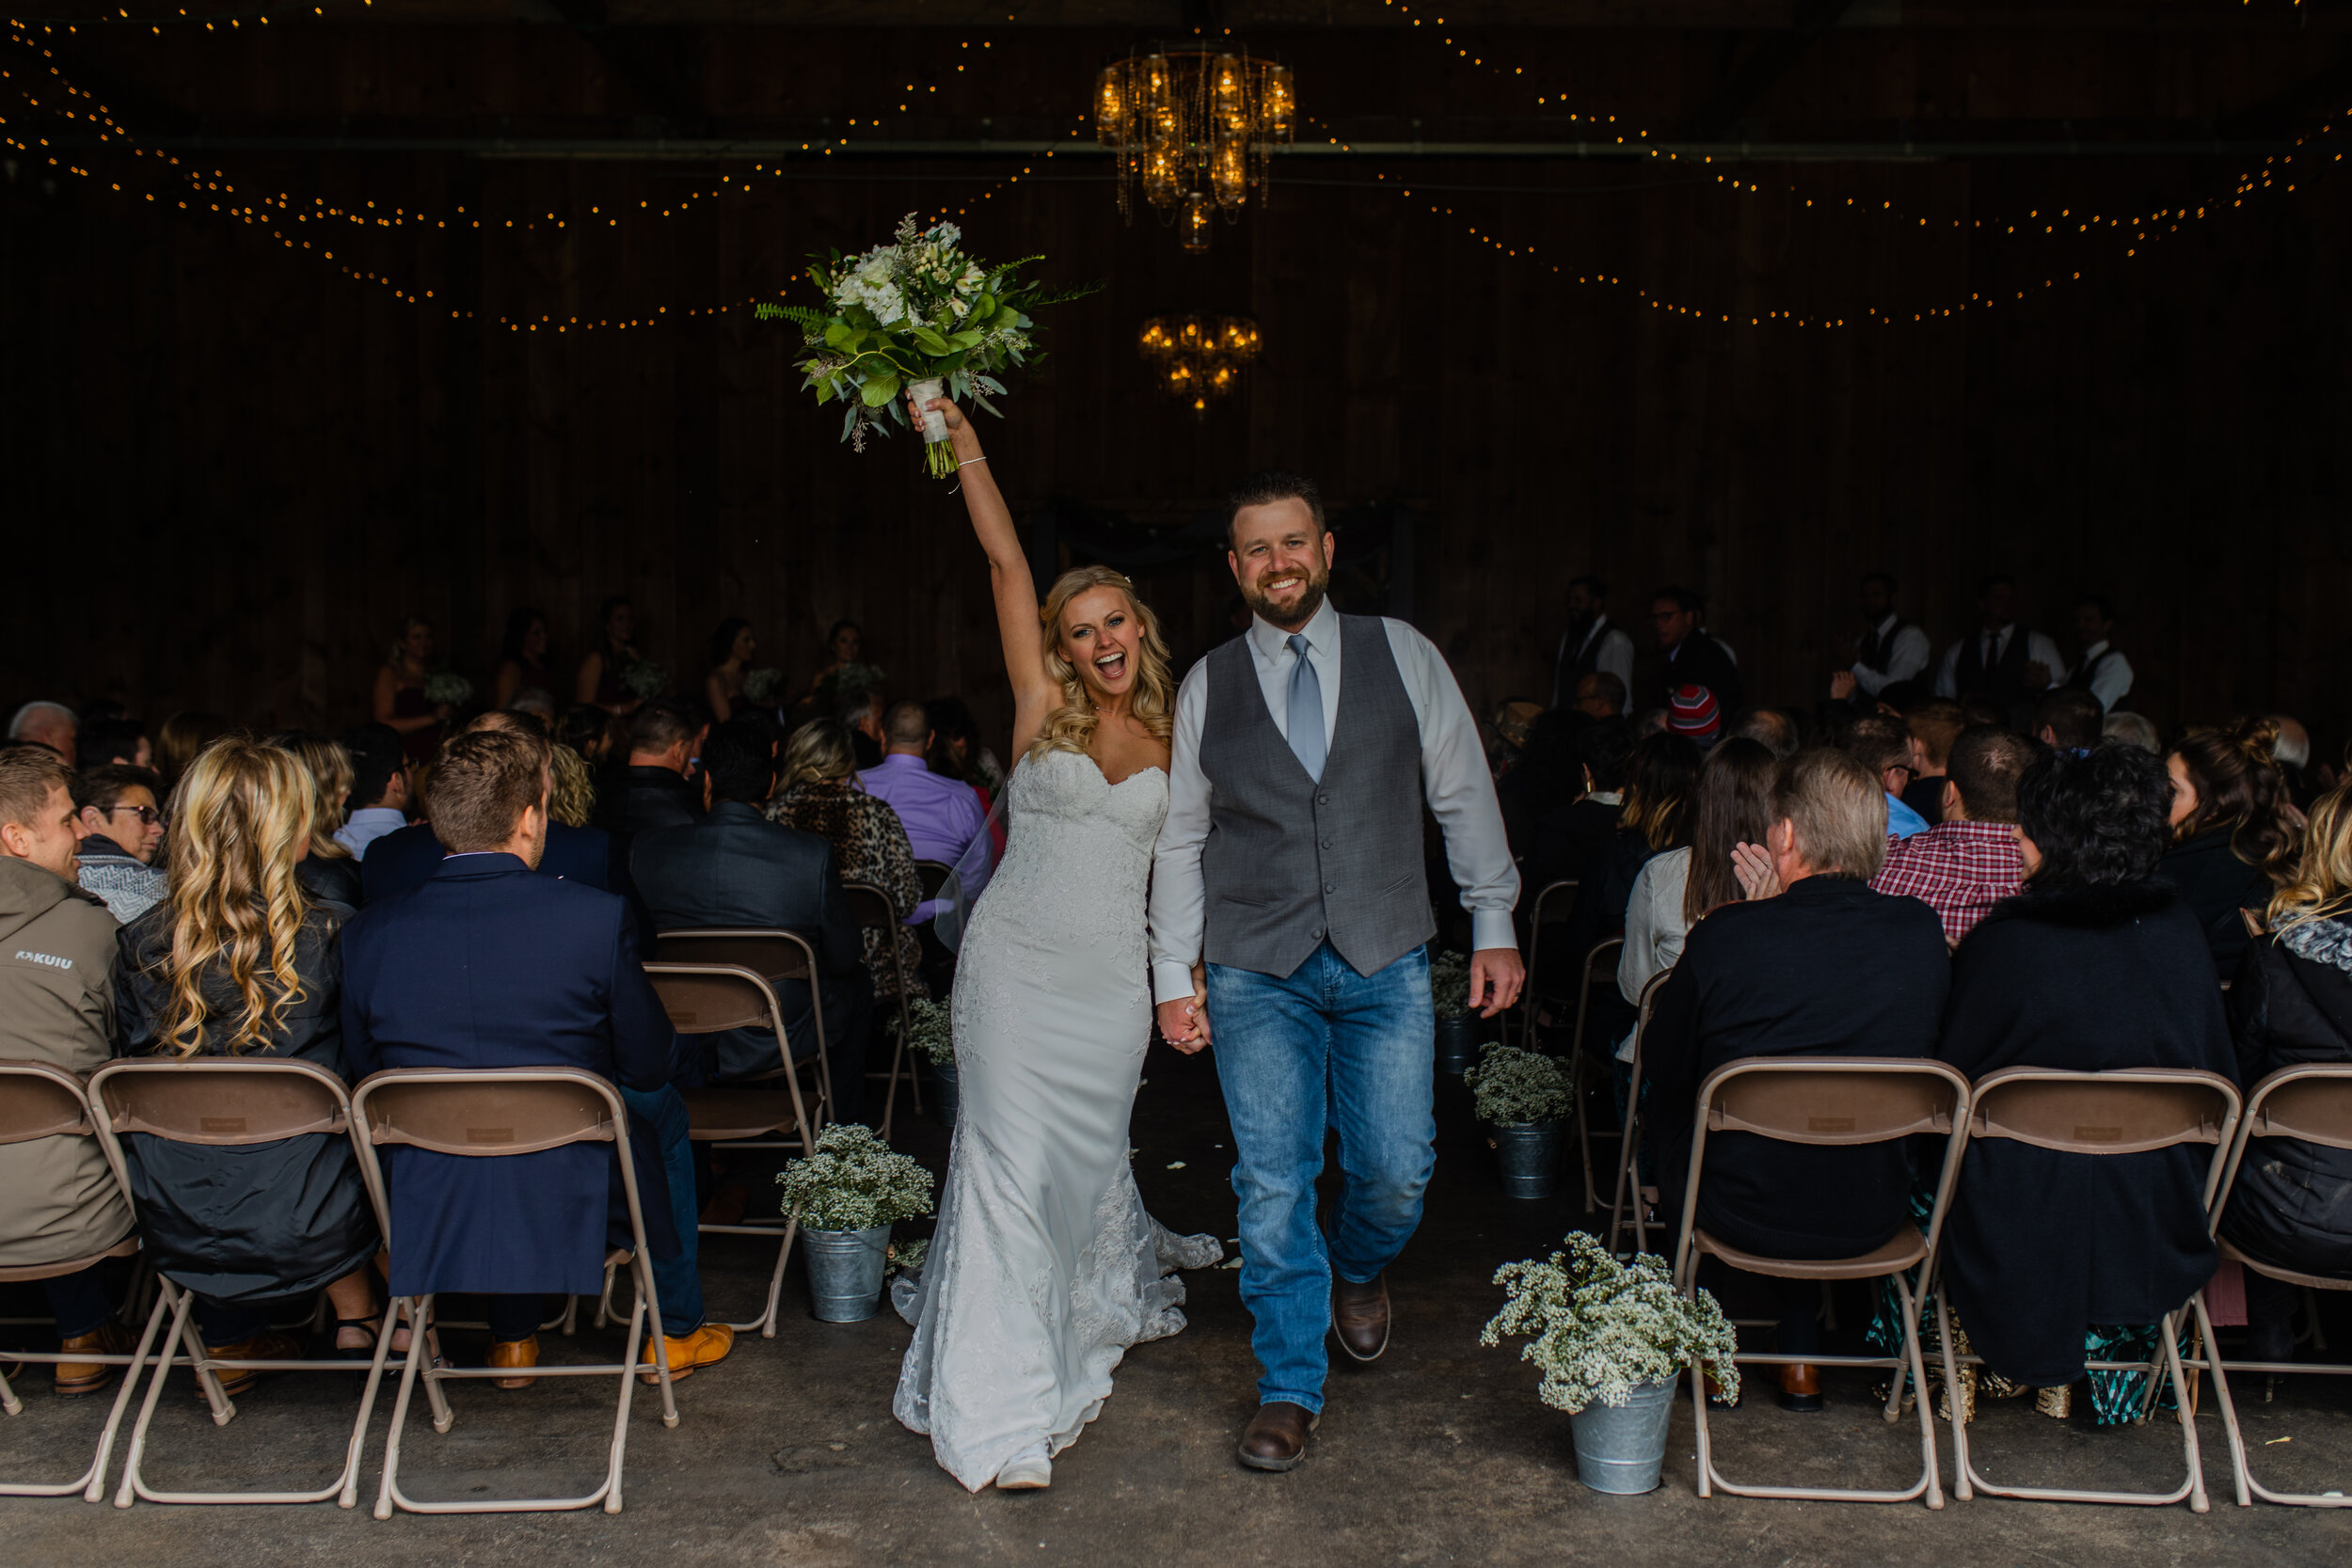 bride-and-groom-just-married-exiting-ceremony-out-of-barn-at-kettle-moraine-ranch.jpg